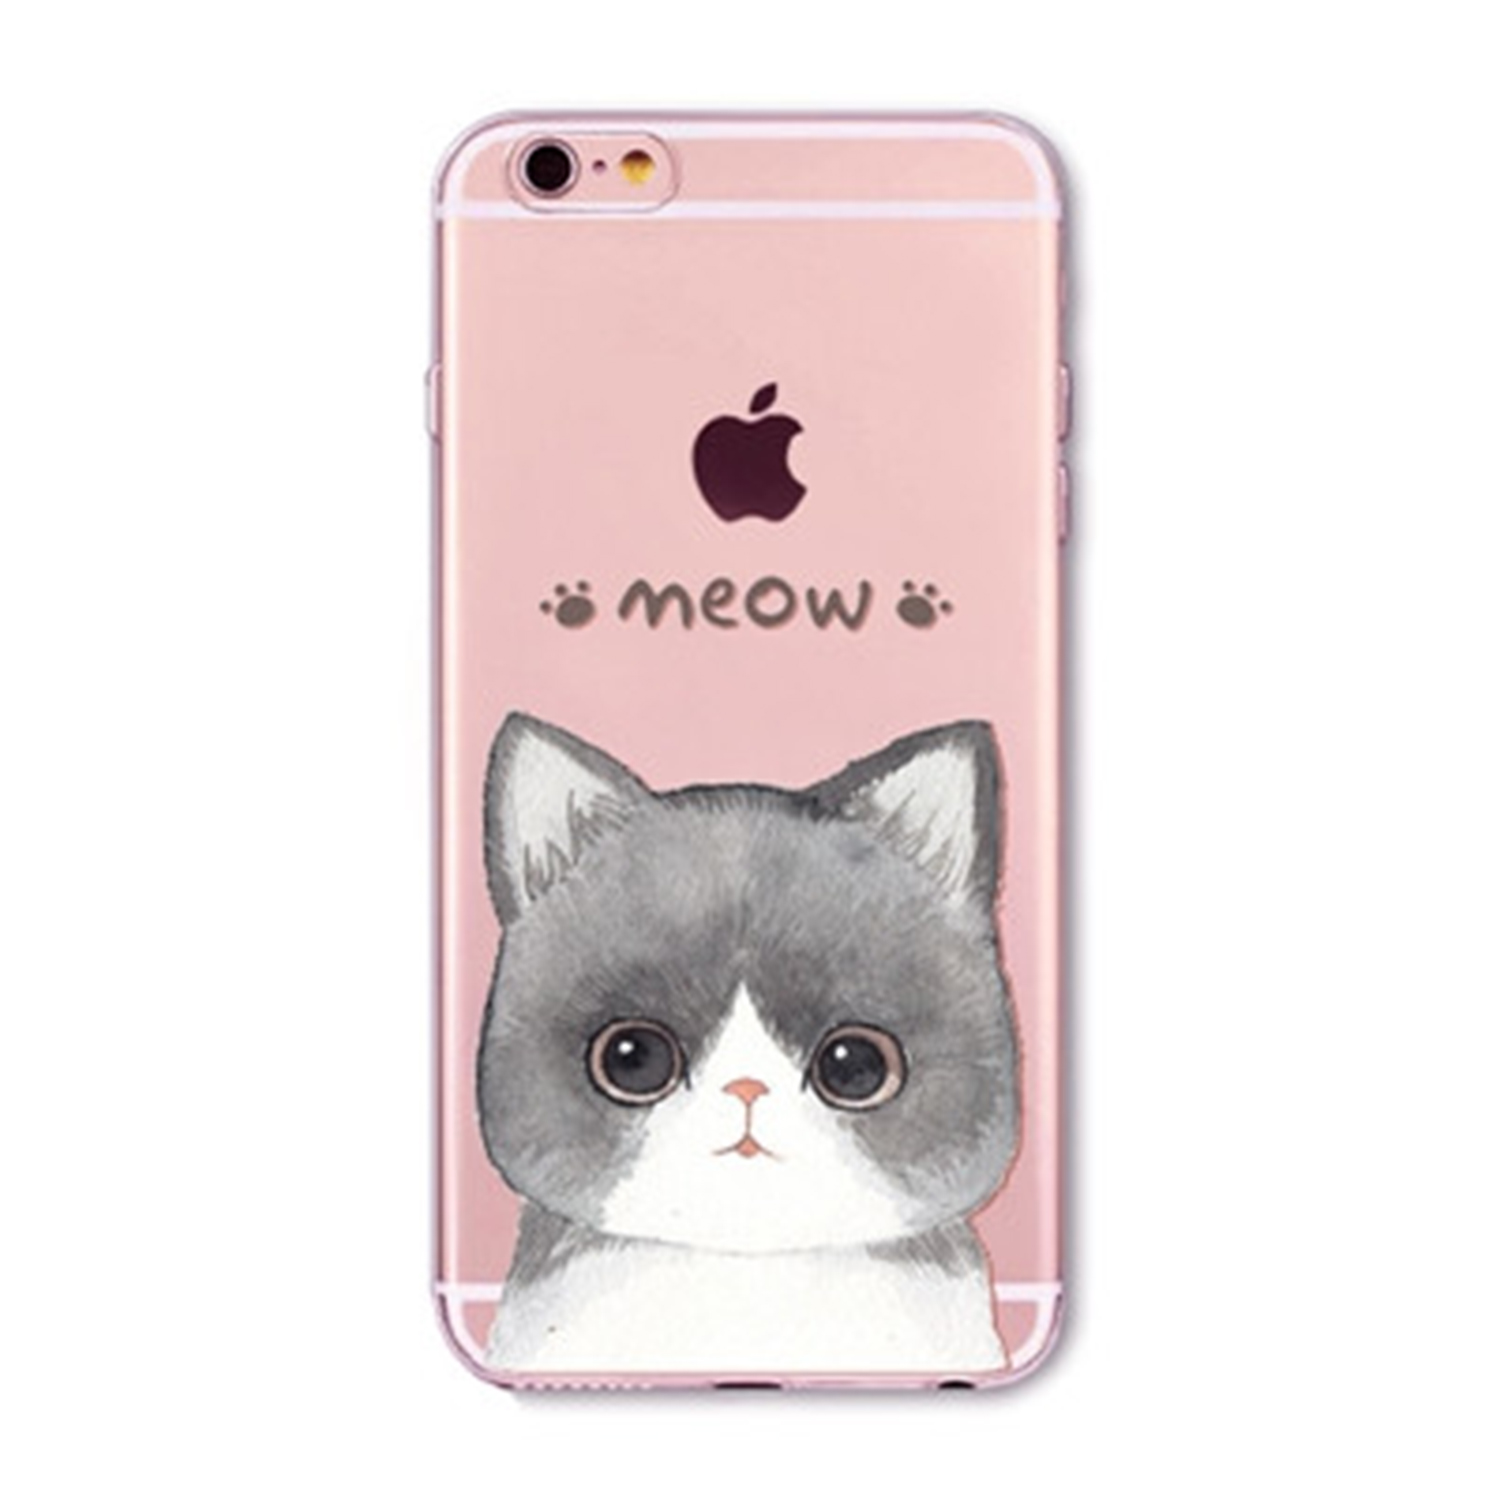 Kritzel Case für iPhone 6 / 6s - Kitty Collection #373